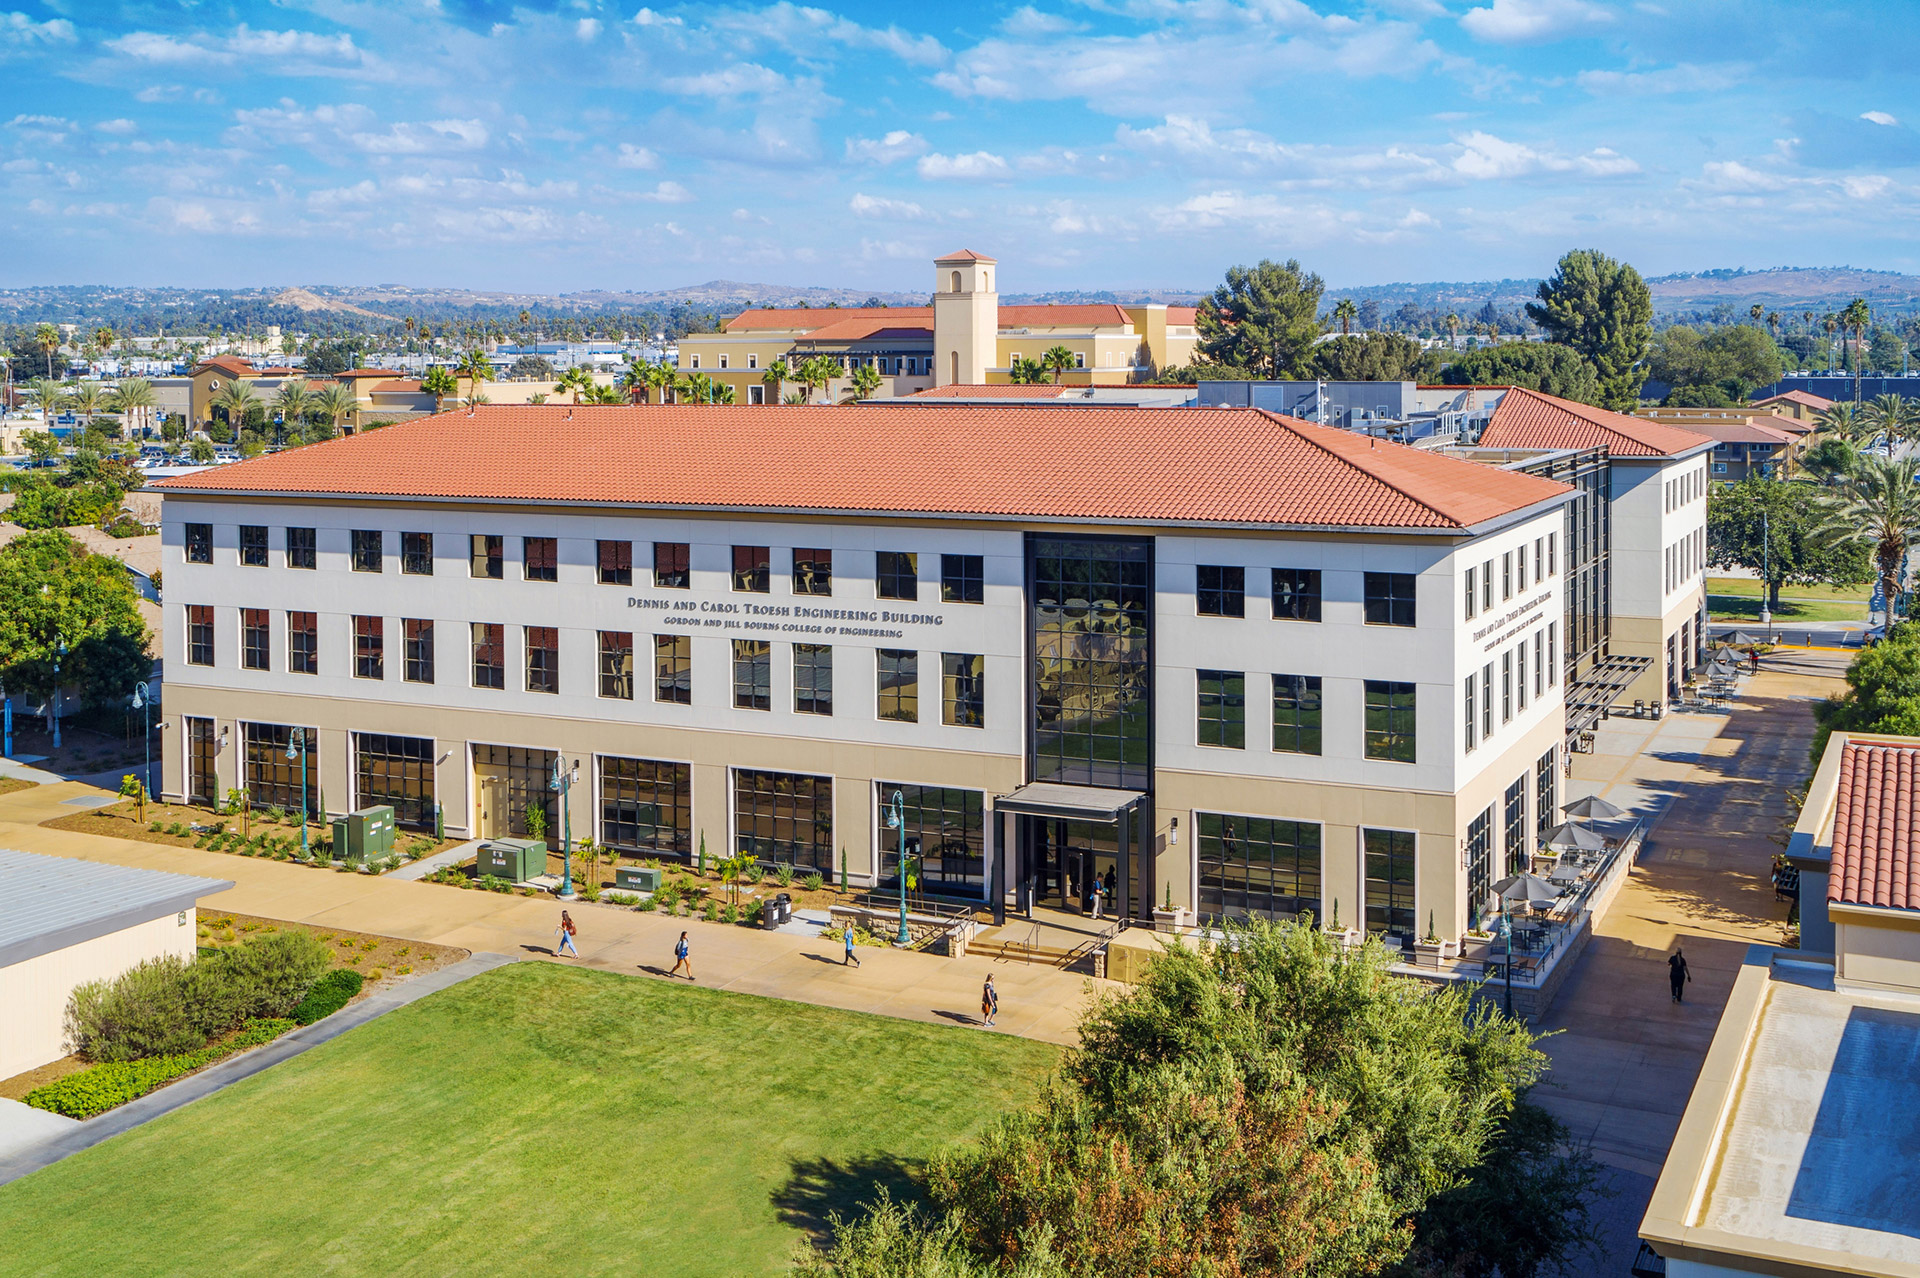 CBU's new engineering building